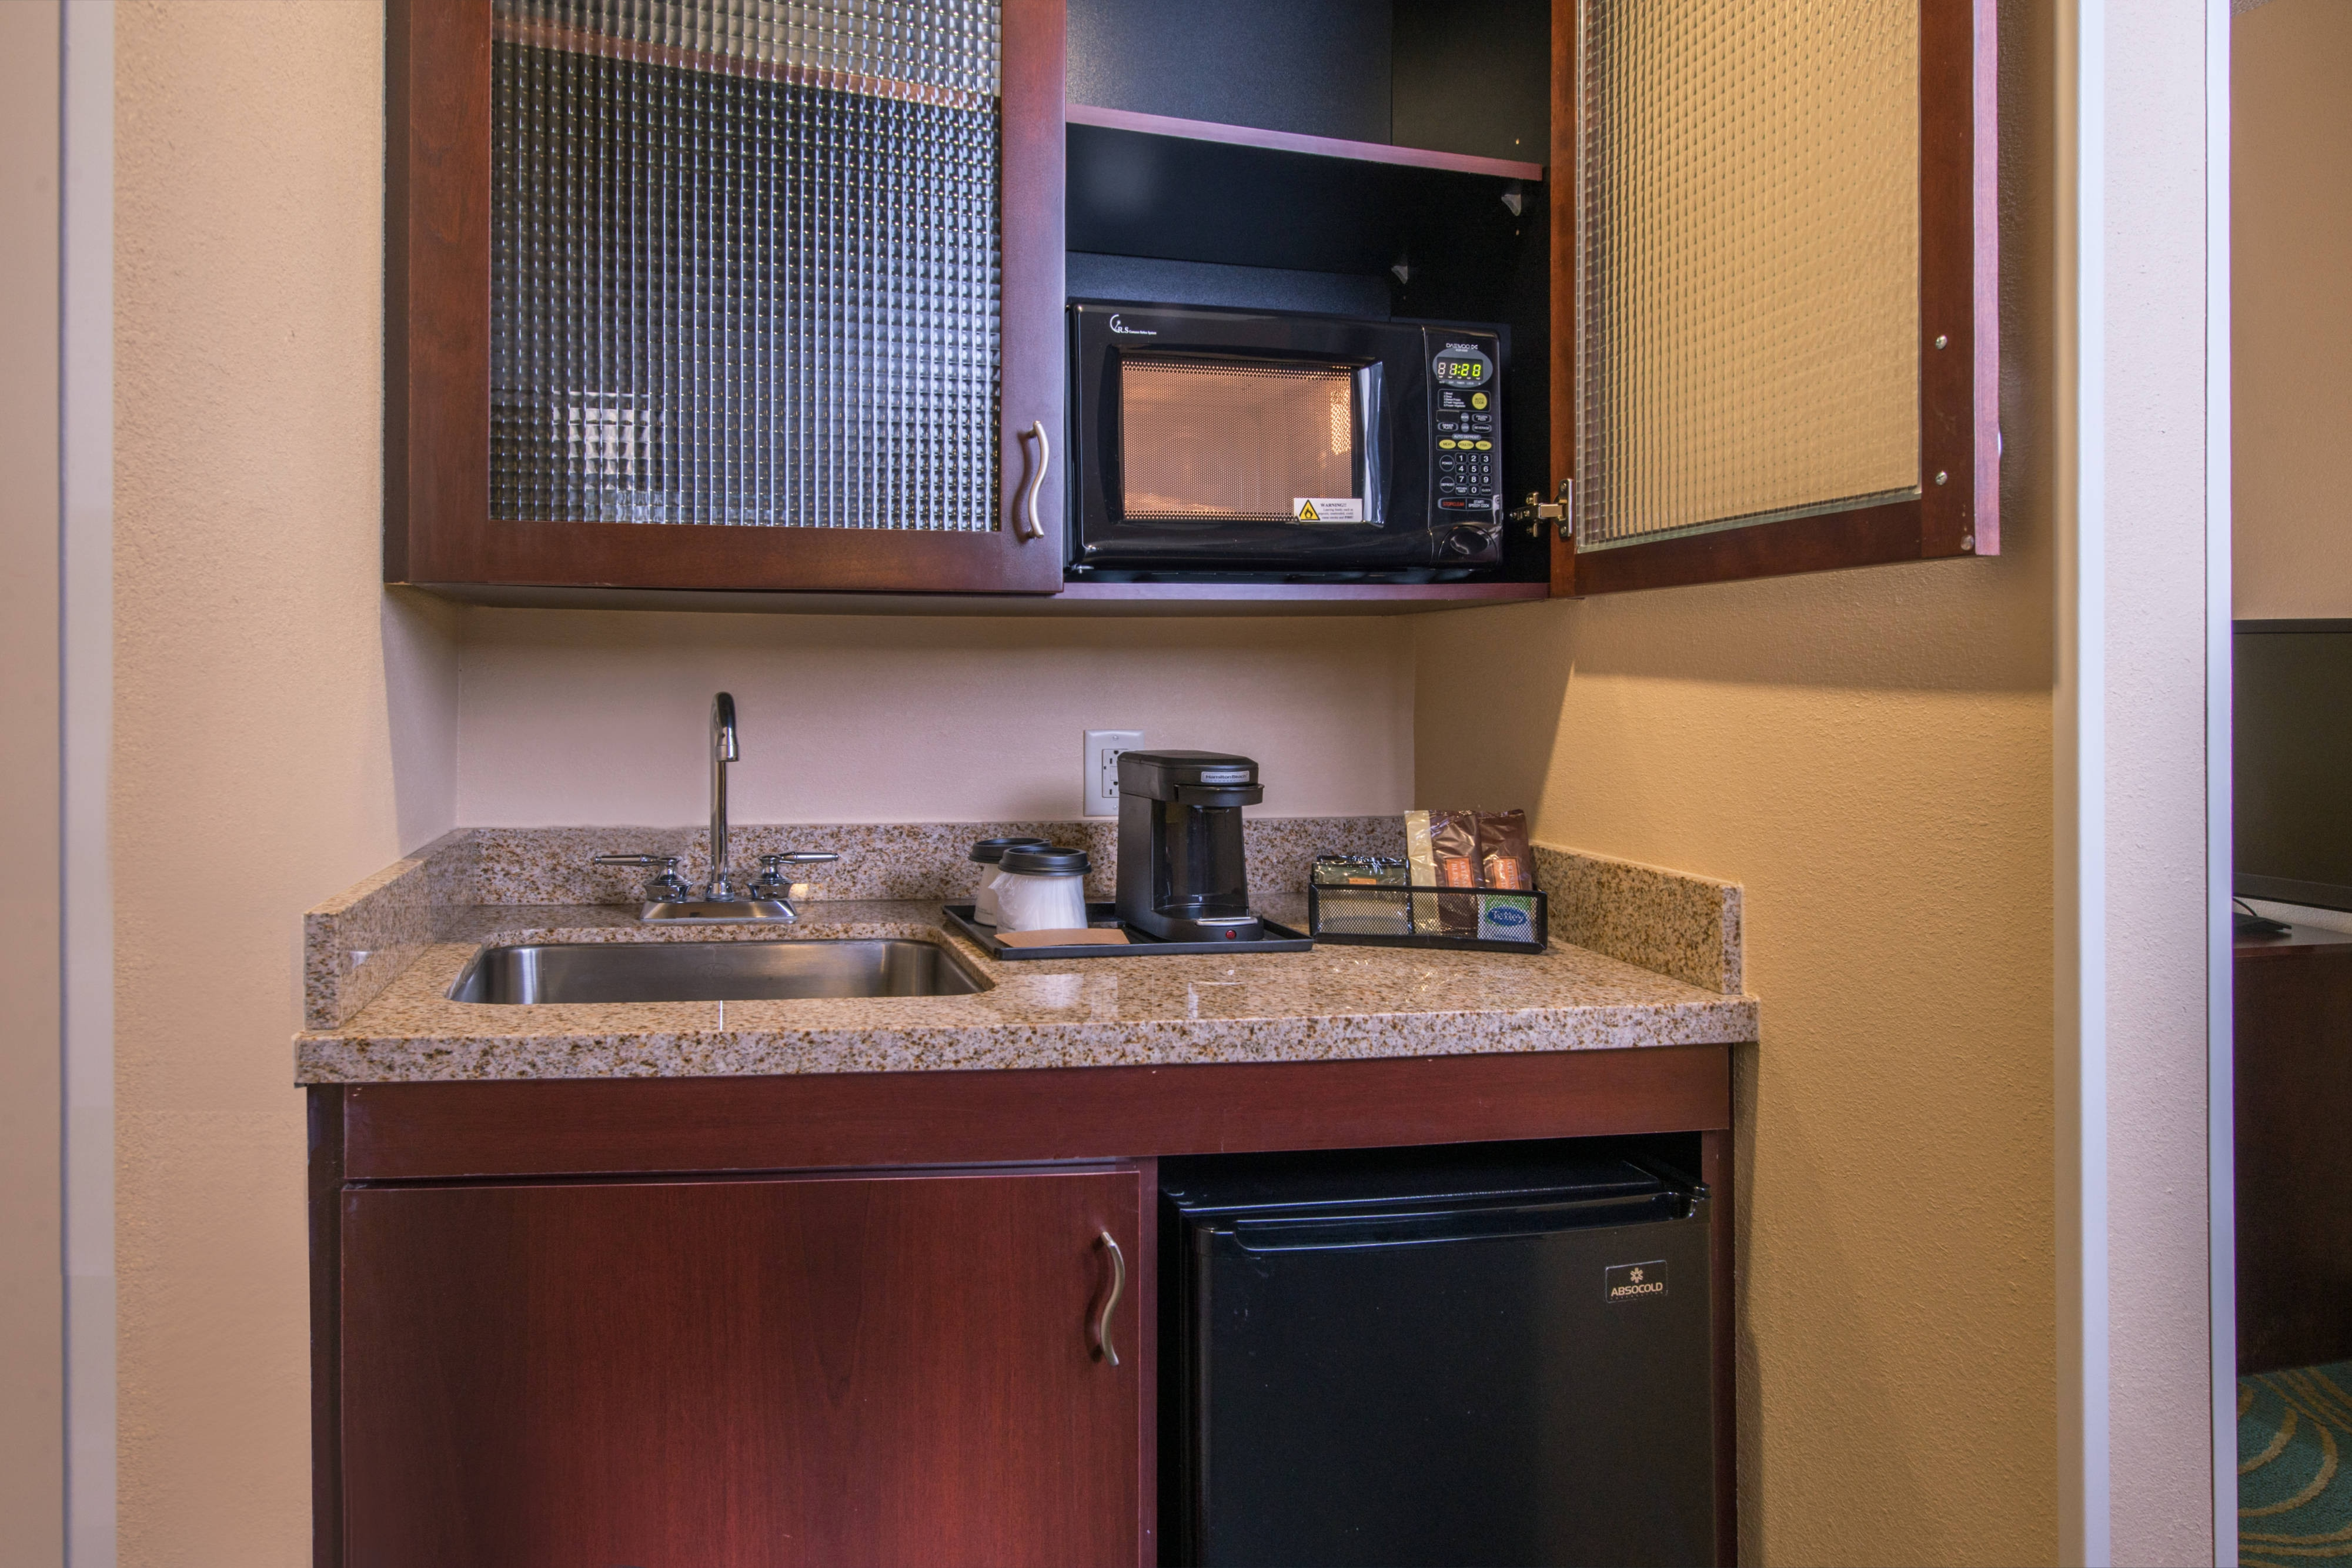 SpringHill Suites Hagerstown Hotel Kitchenette